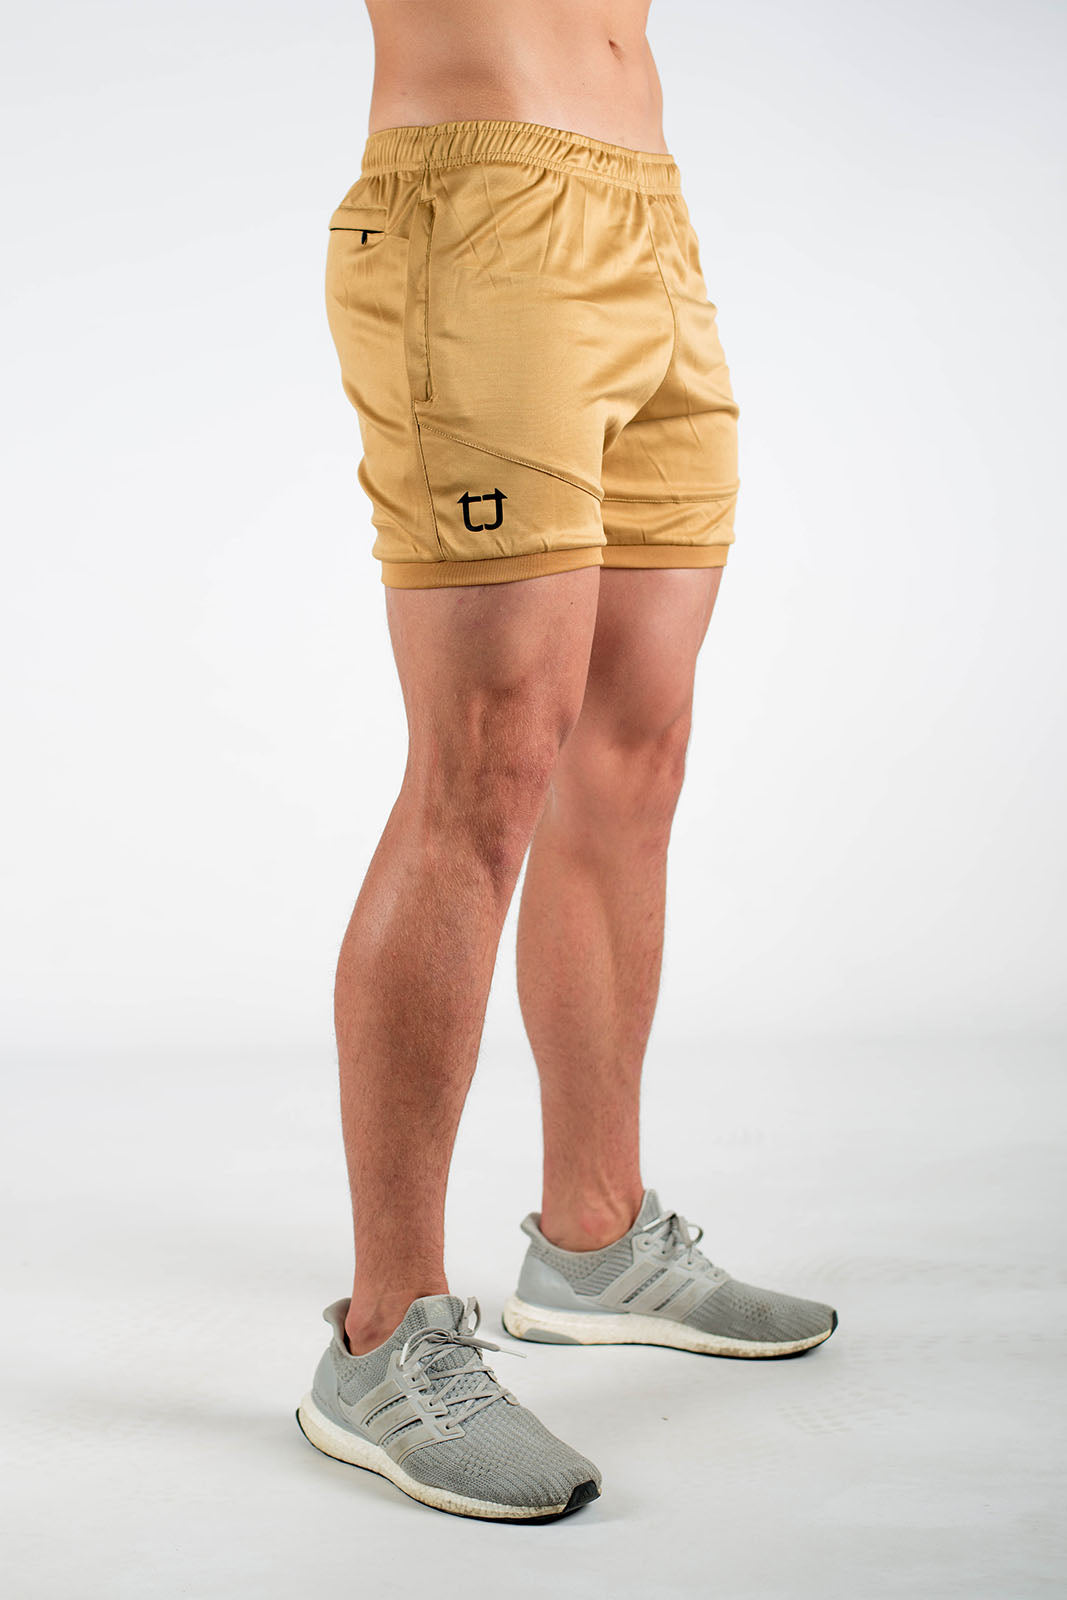 Twotags Dry Active Shorts - Coyote Tan